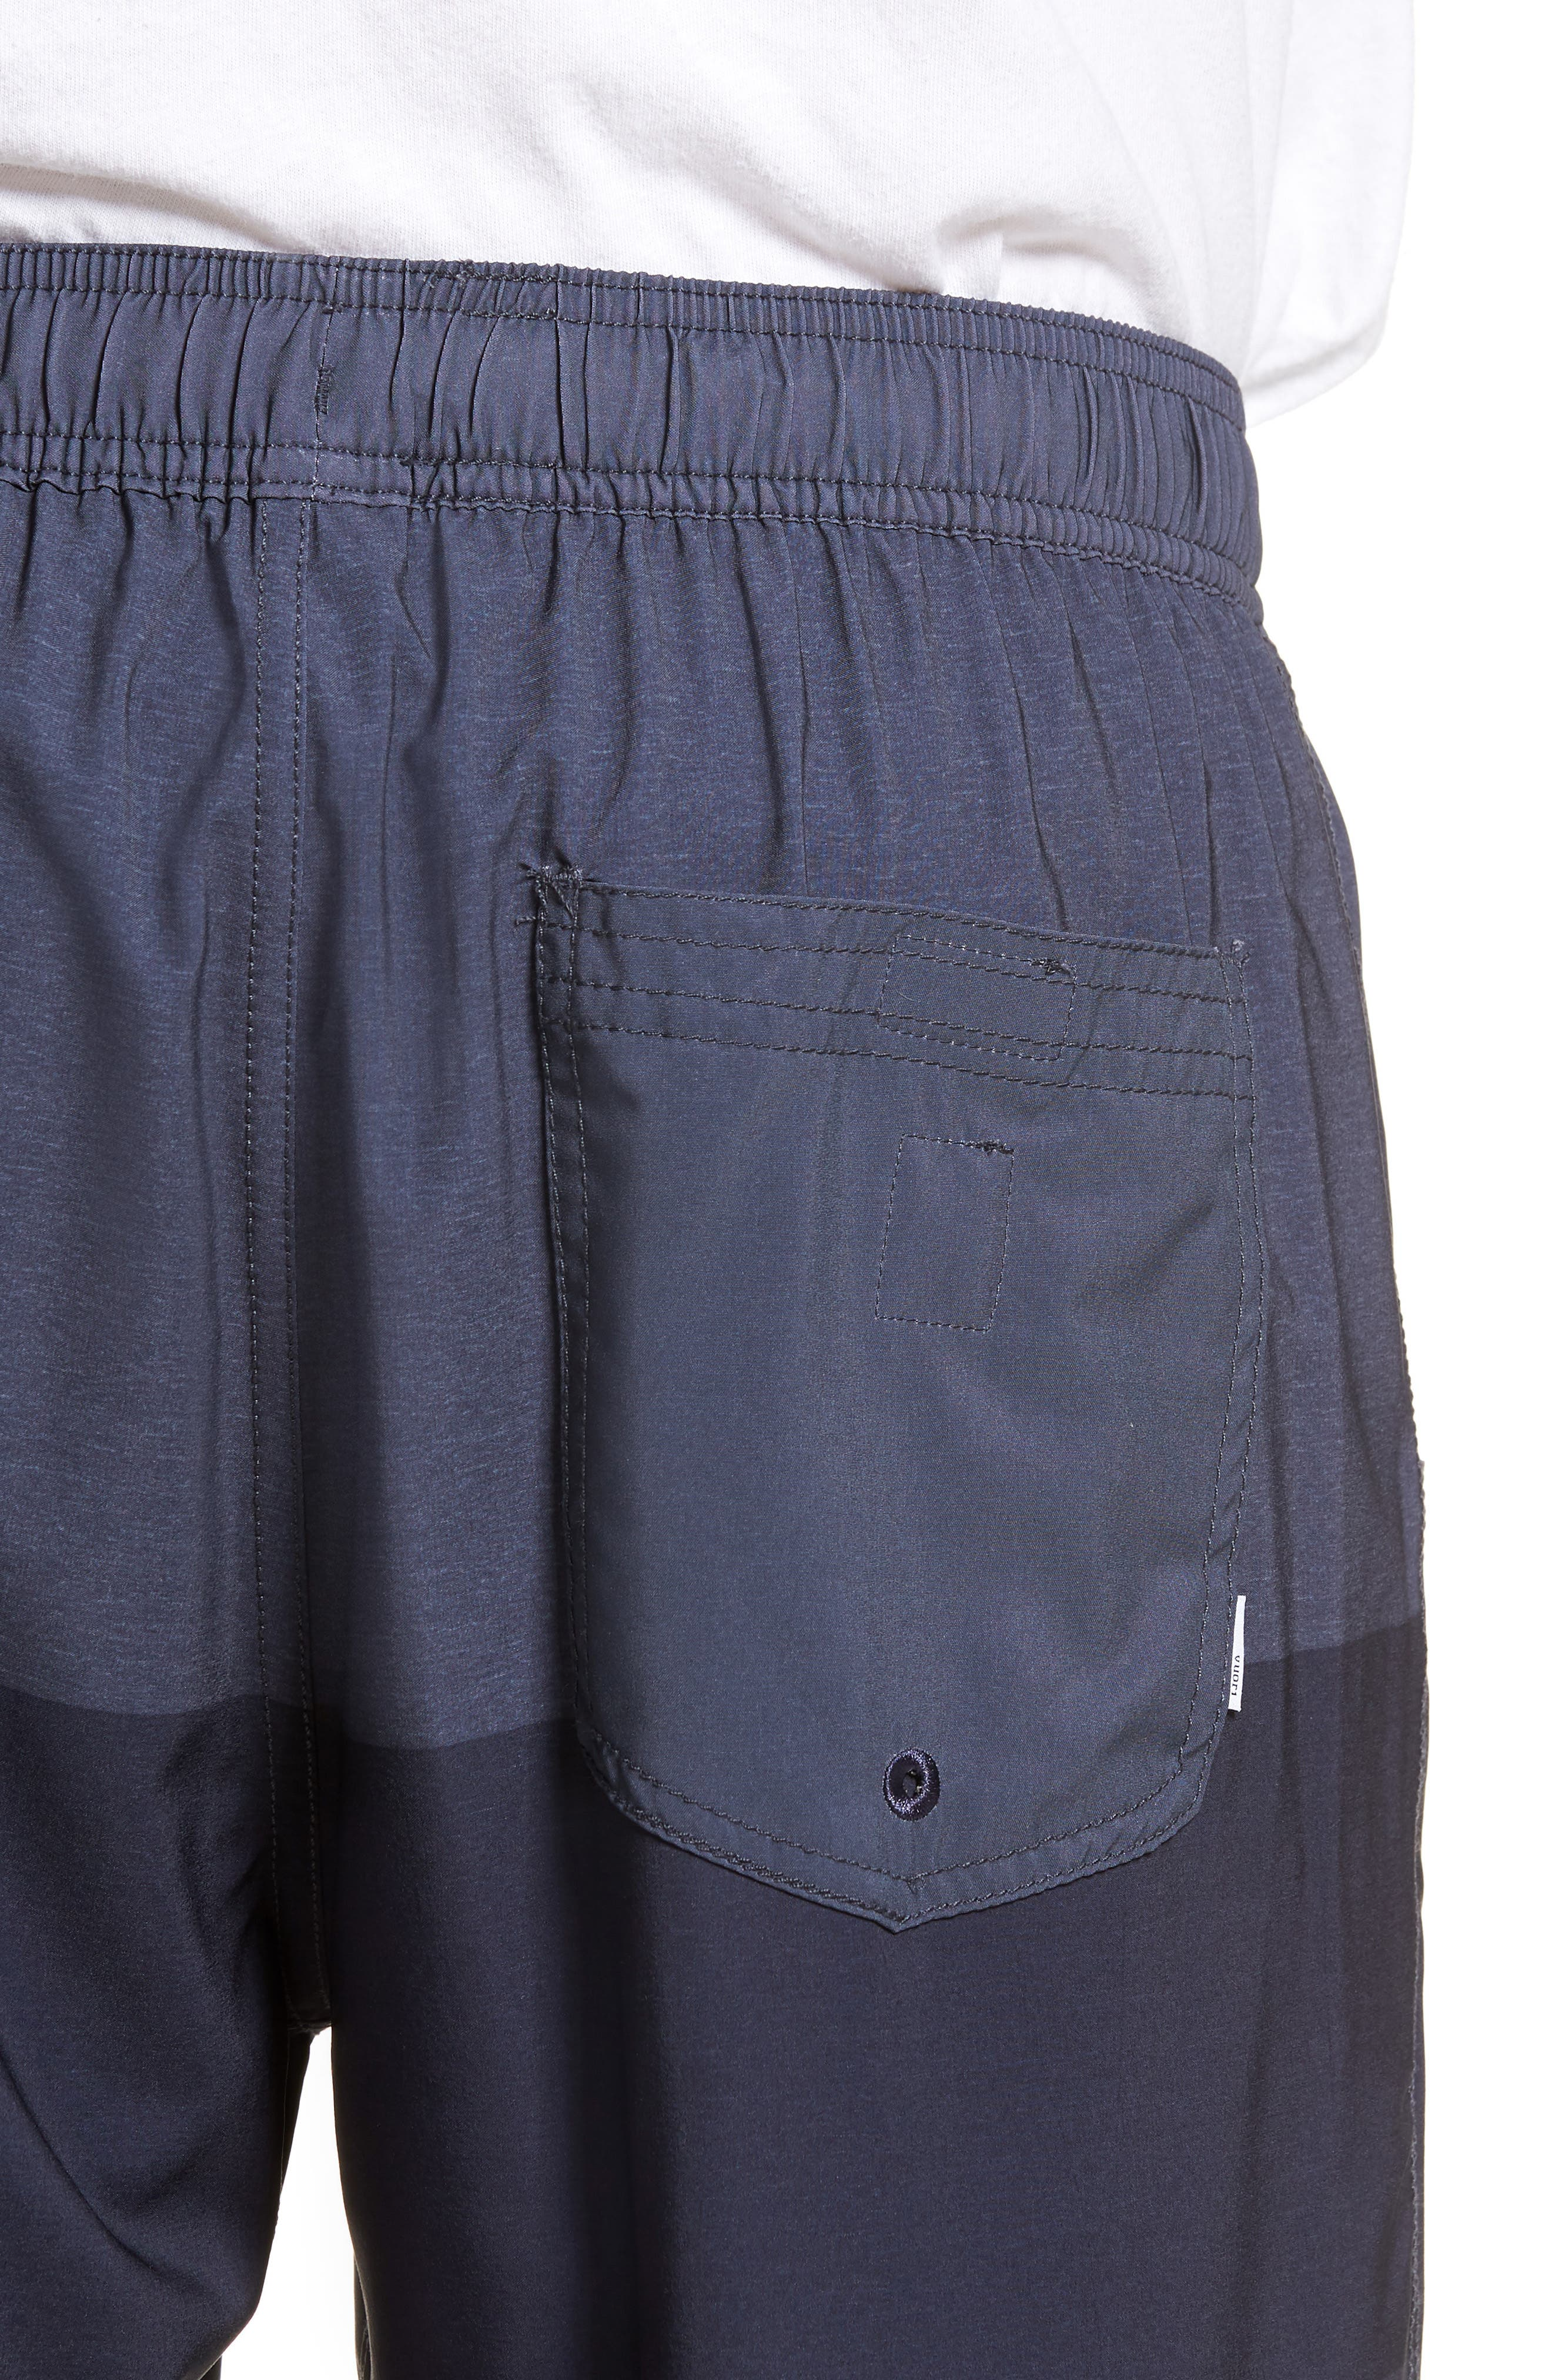 Kore Shorts,                             Alternate thumbnail 4, color,                             Navy Texture Block